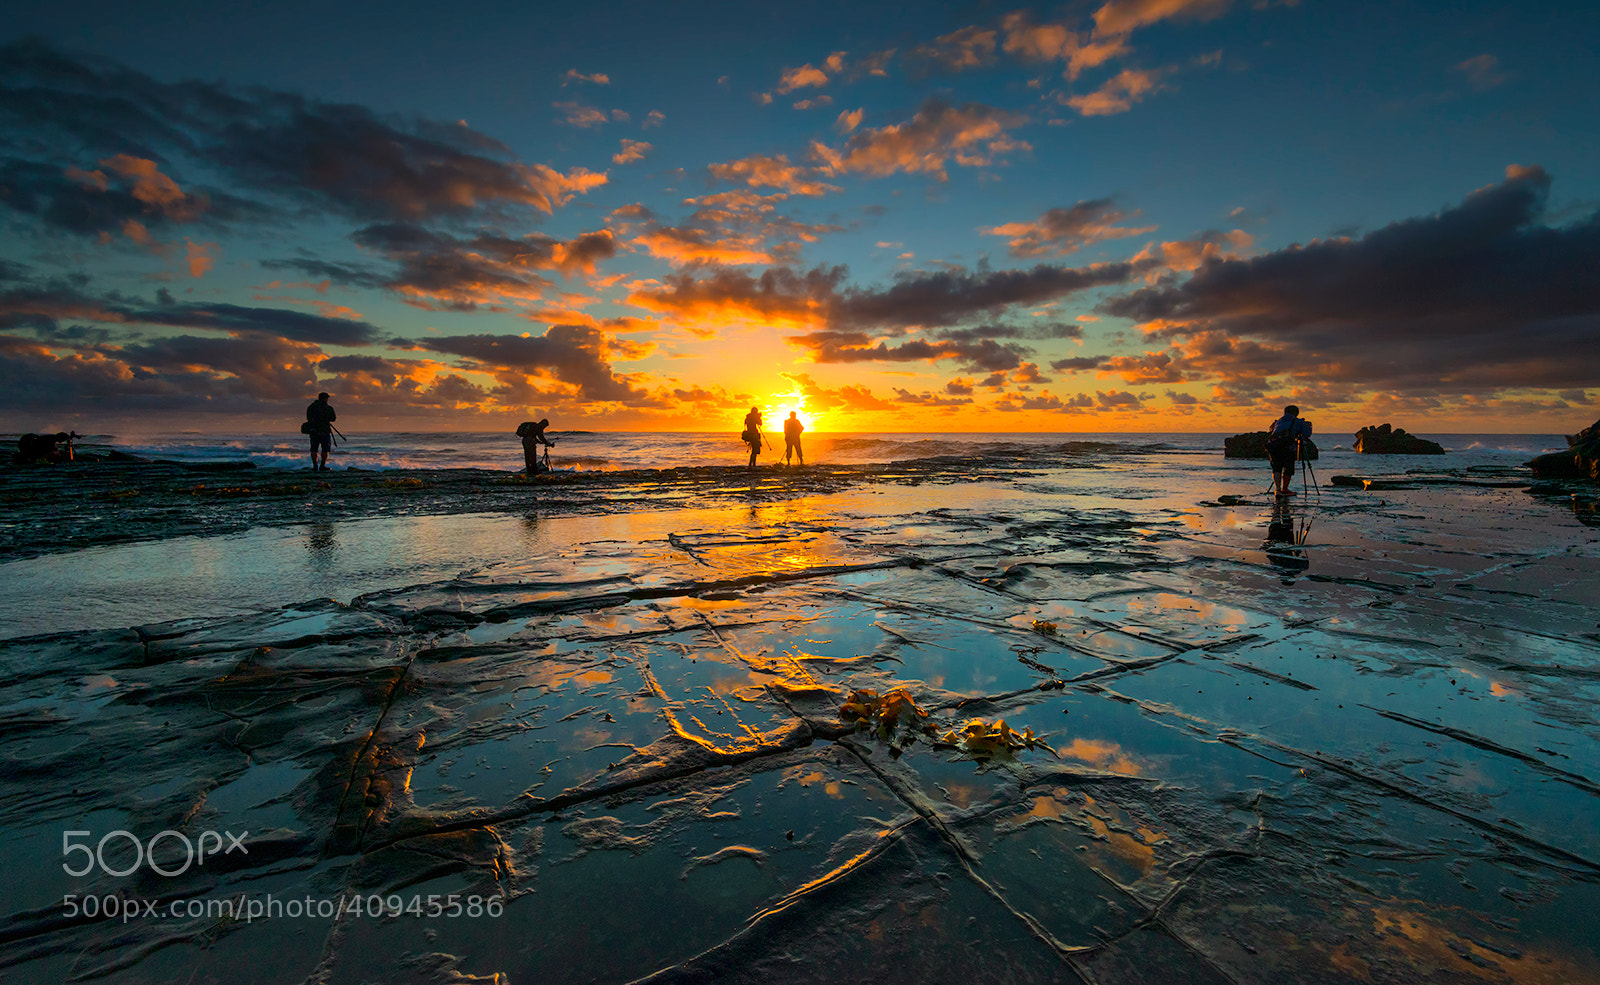 Photograph what Photographers job!! by Goff Kitsawad on 500px